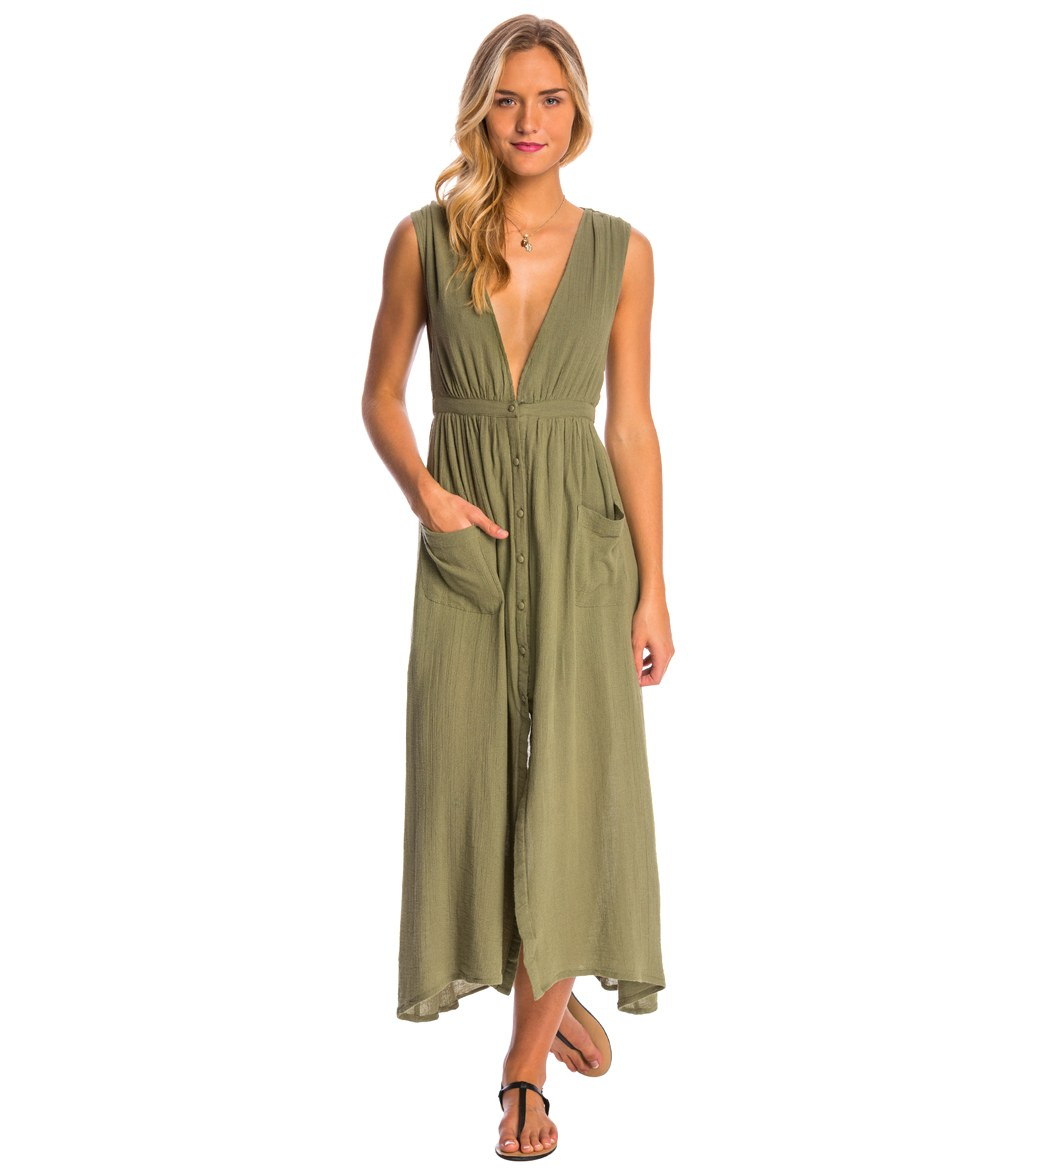 Billabong Voyager Maxi Dress at SwimOutlet.com - Free Shipping